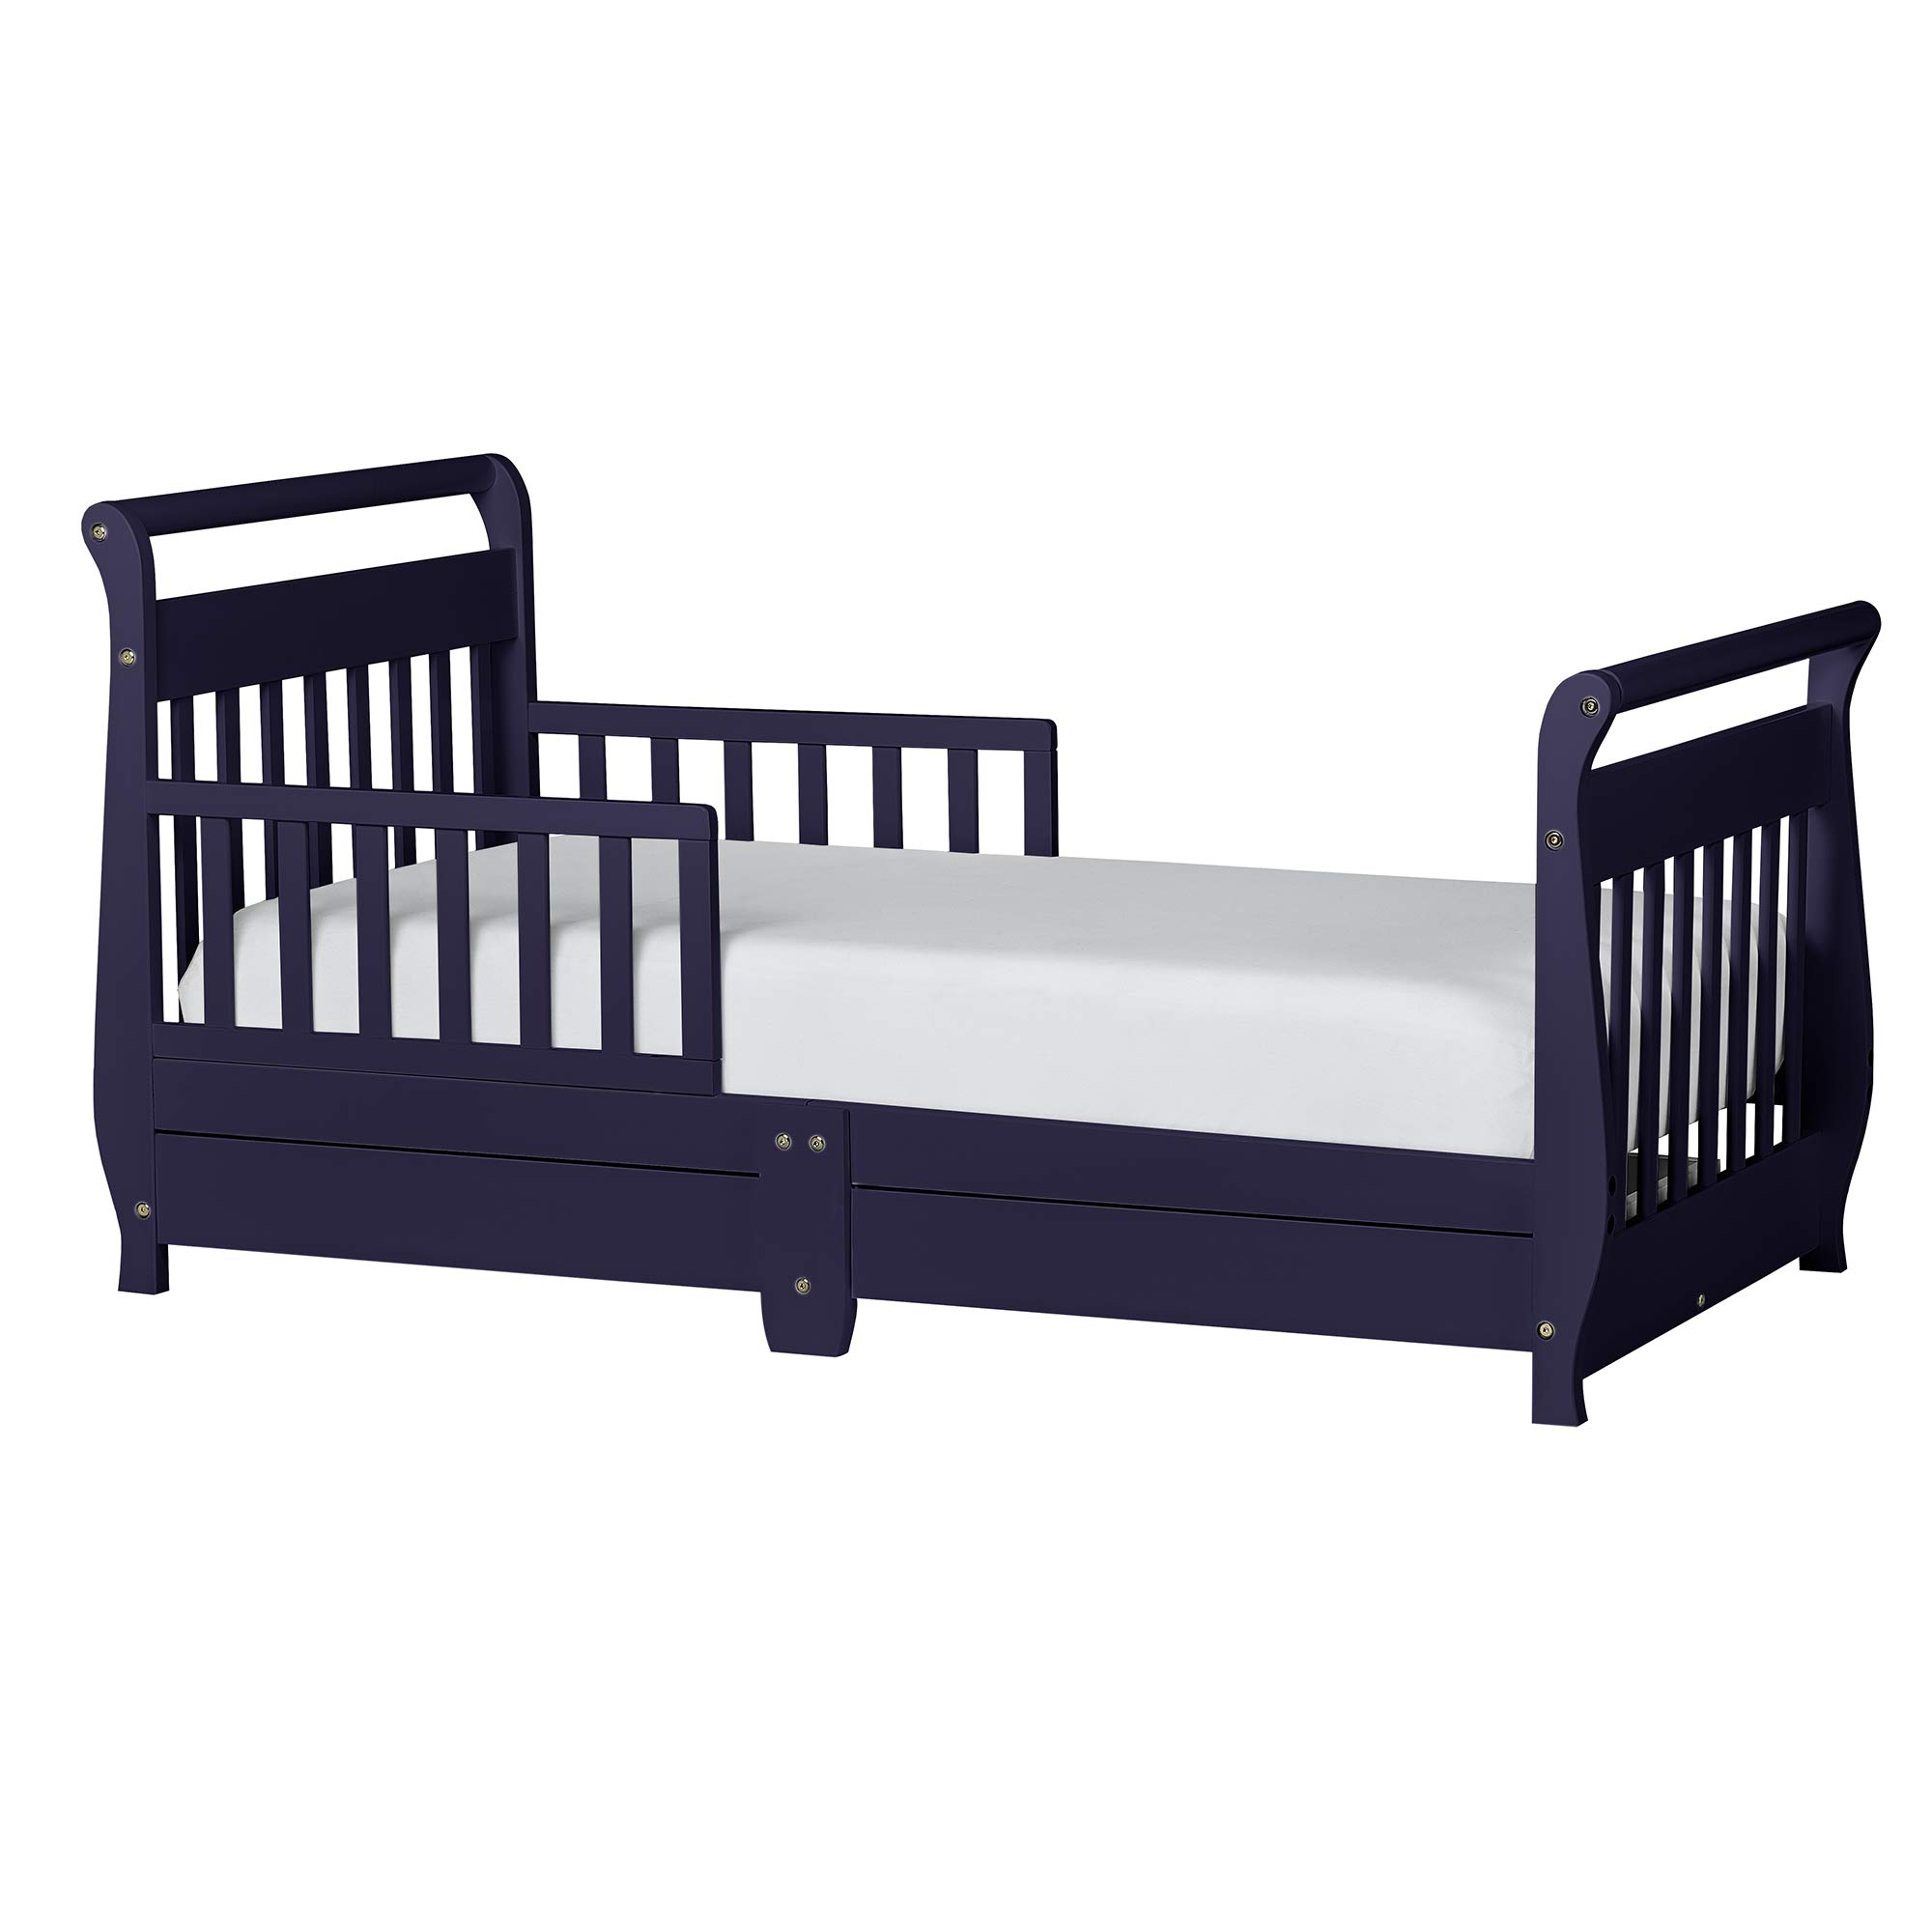 Dream On Me Sleigh Toddler Bed w/Storage Drawer, Navy by Dream On Me